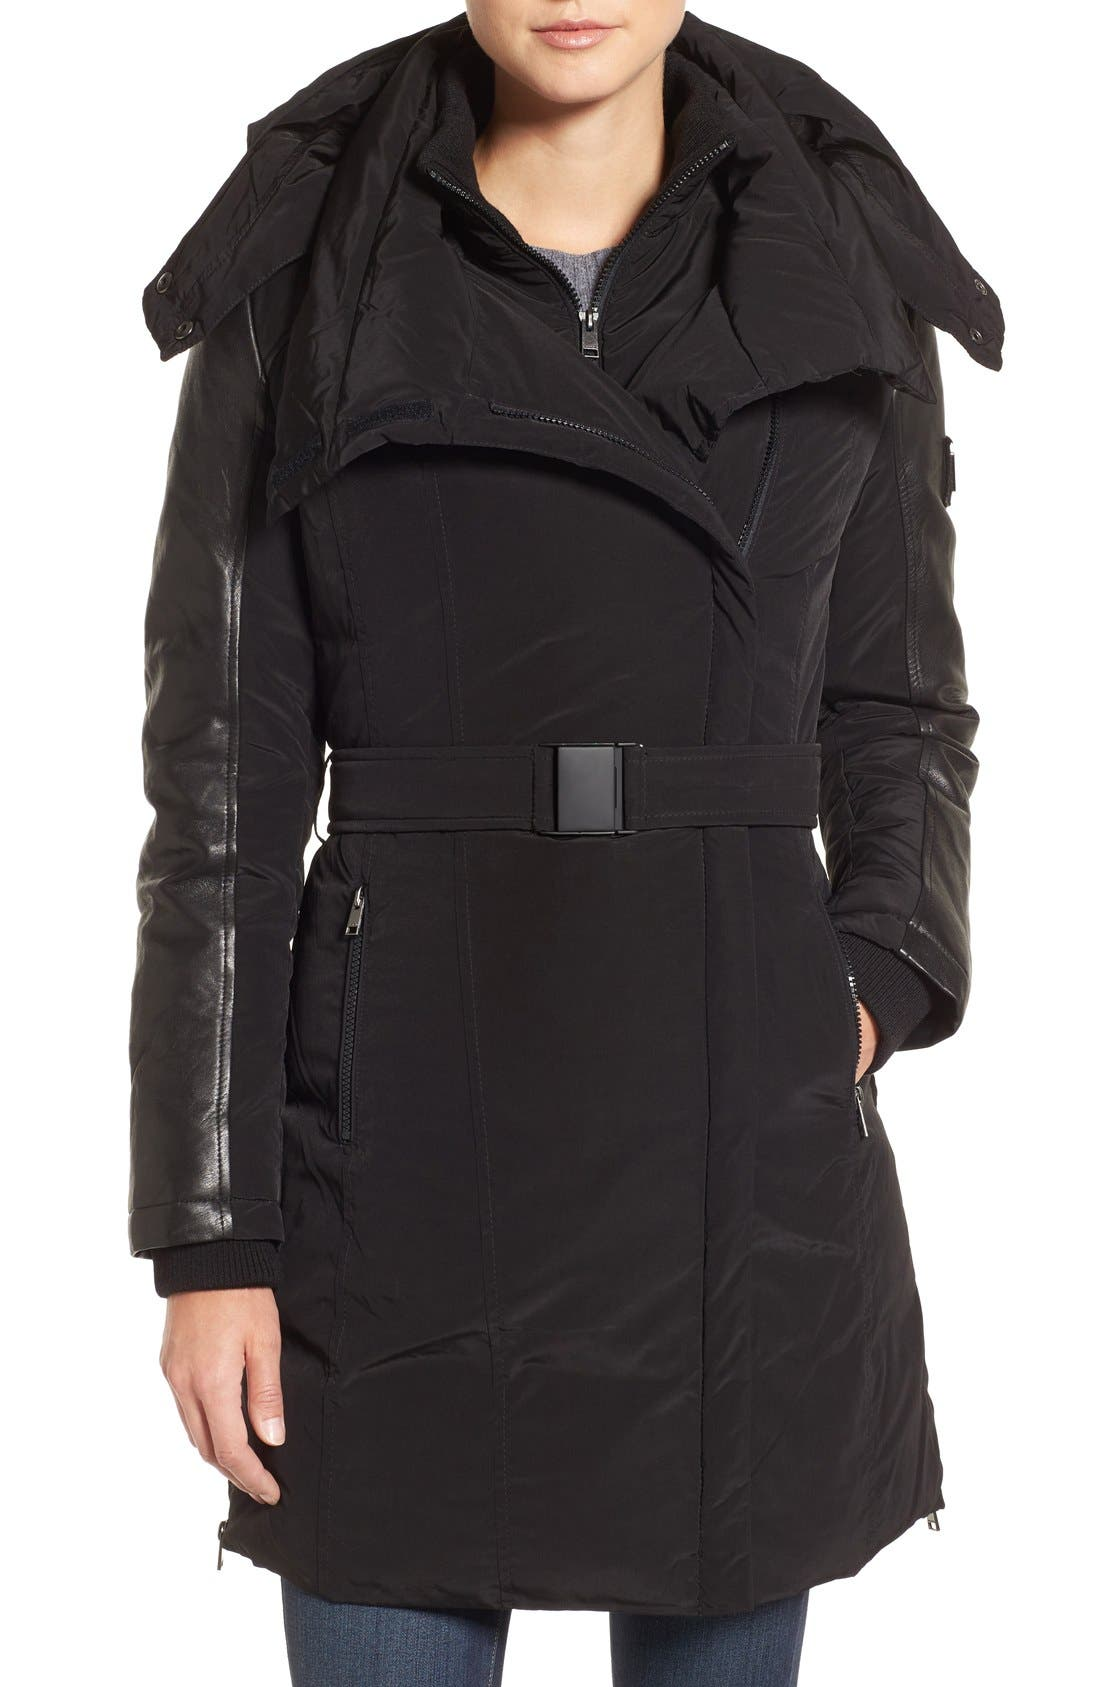 Alternate Image 1 Selected - LaMarque Asymmetrical Hooded Down Coat with Genuine Leather Trim